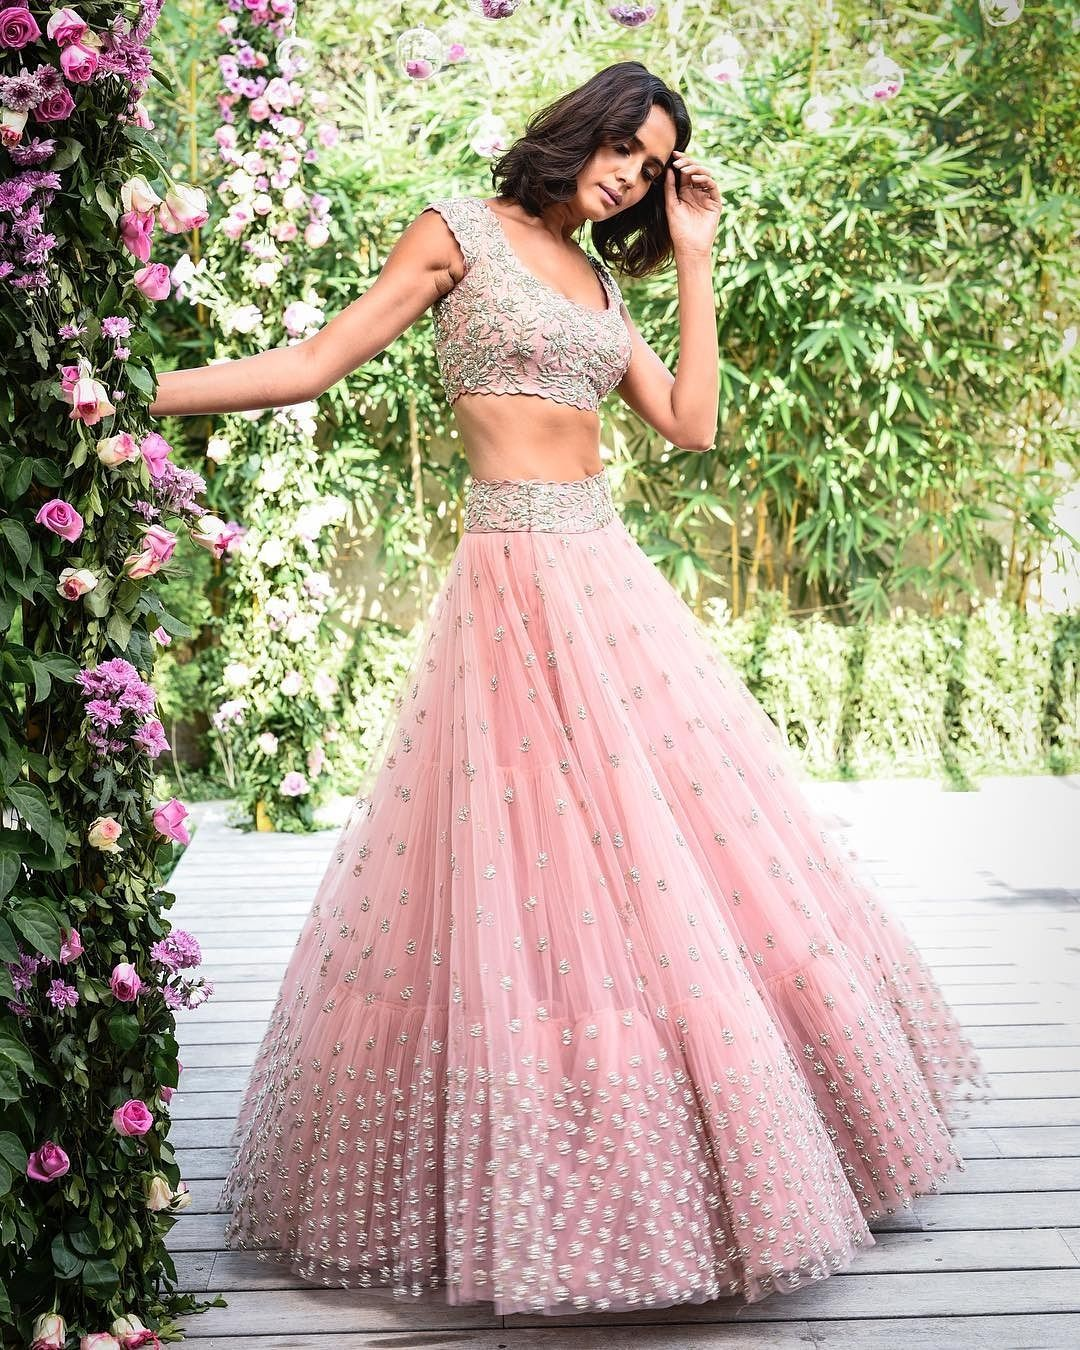 Aynaa On Instagram Attending Party Soon Shop These Inspired Party Wear Lehenga Cholis For Y Party Wear Indian Dresses Party Wear Lehenga Party Wear Dresses,Wedding Royal Blue And Gold Bridesmaid Dresses